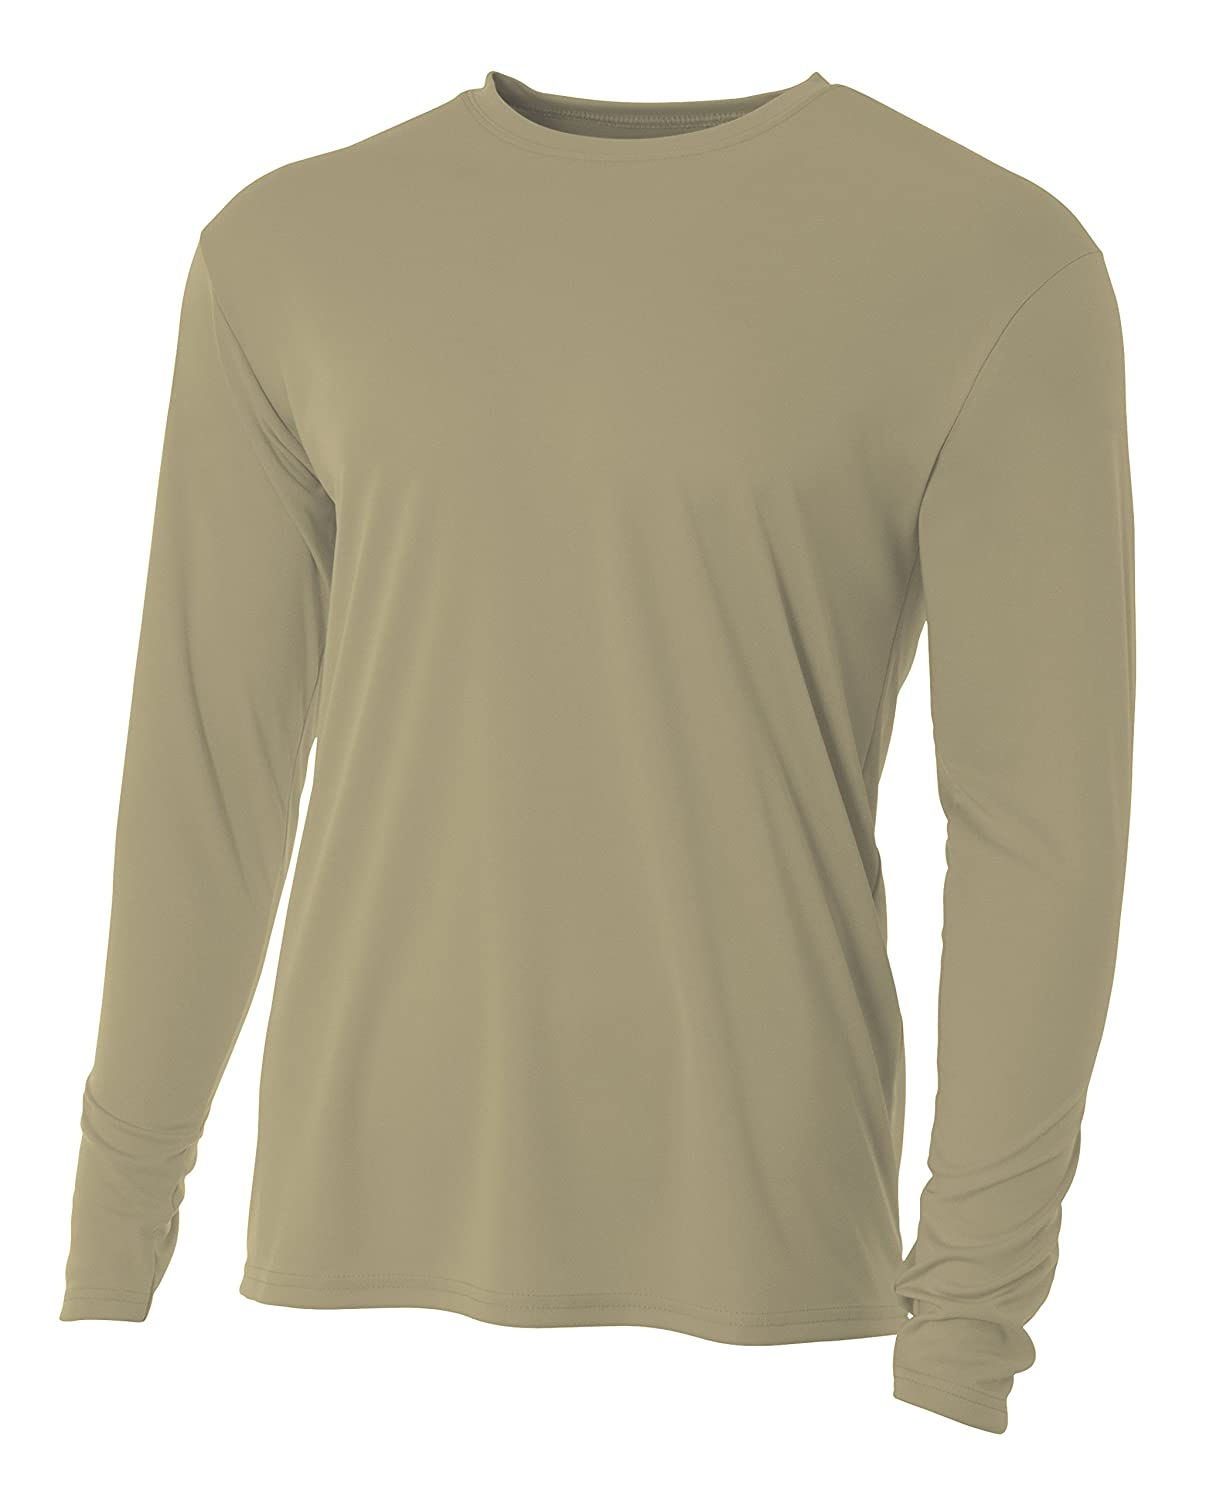 50ee91a8 Amazon.com: A4 Men's Cooling Performance Crew Long Sleeve Tee: A4: Clothing